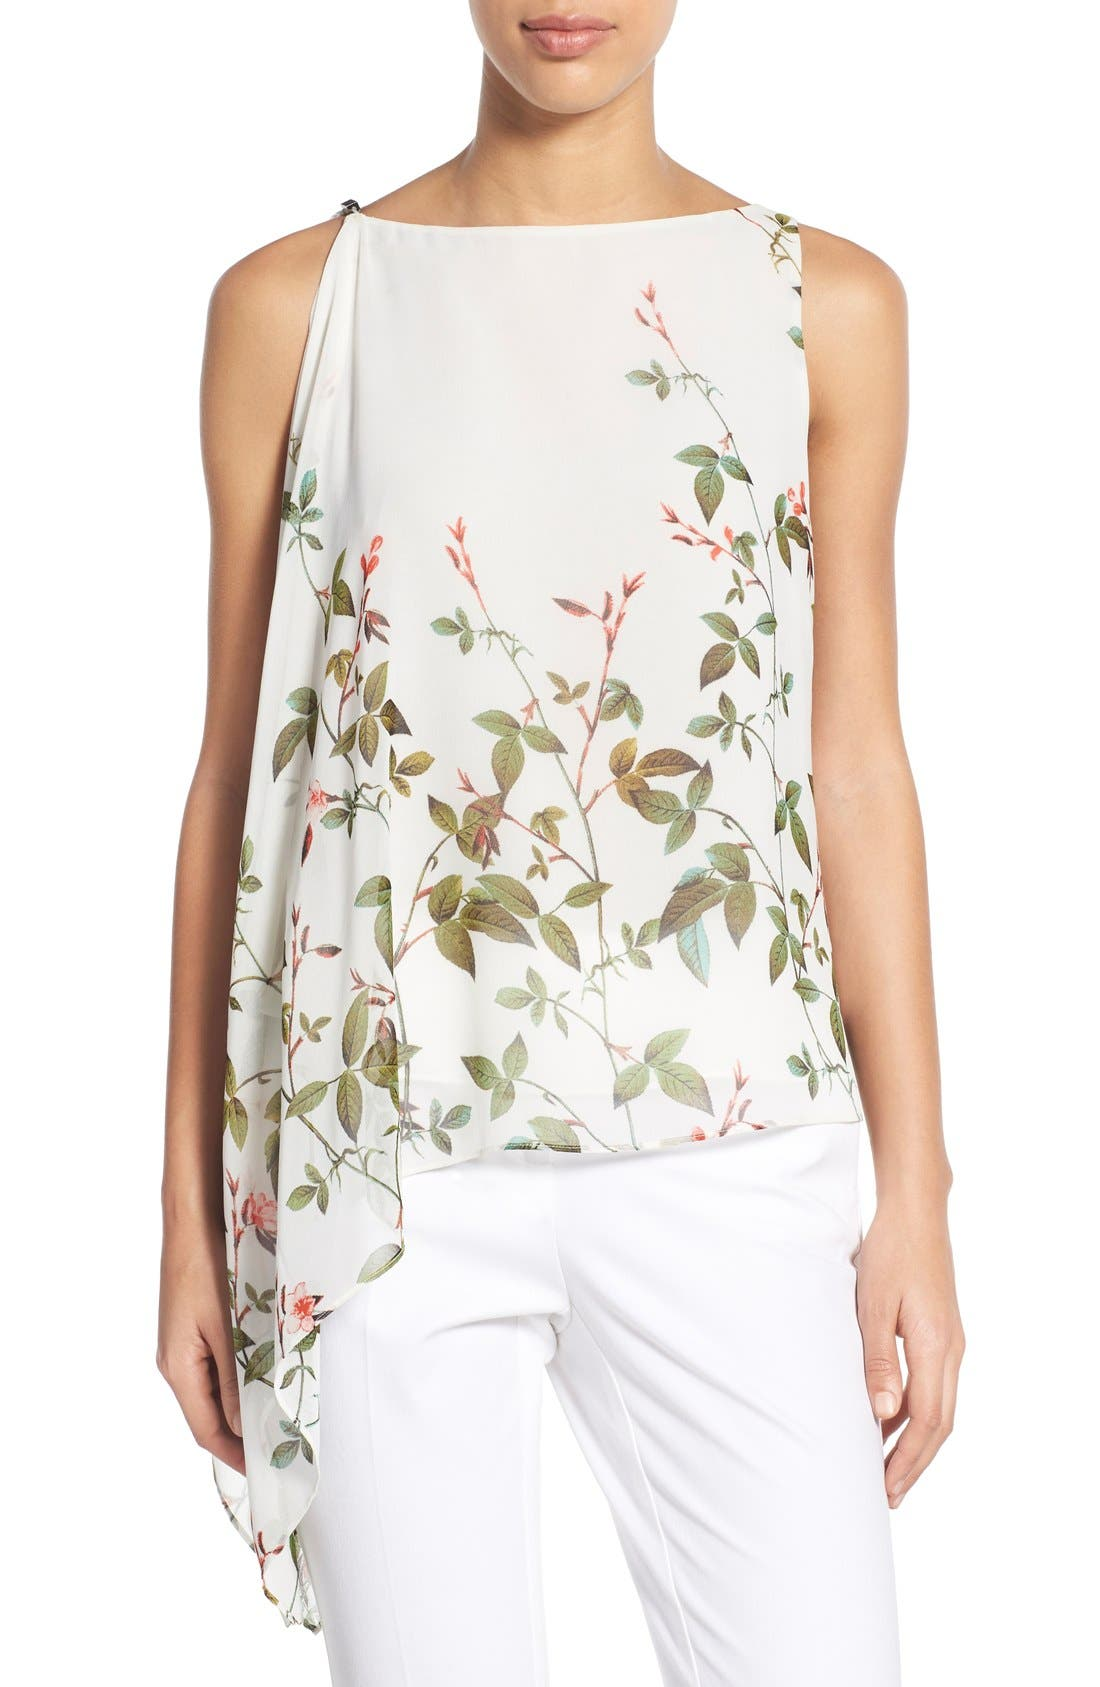 Alternate Image 1 Selected - Adrianna Papell Floral Print Asymmetrical Chiffon Blouse